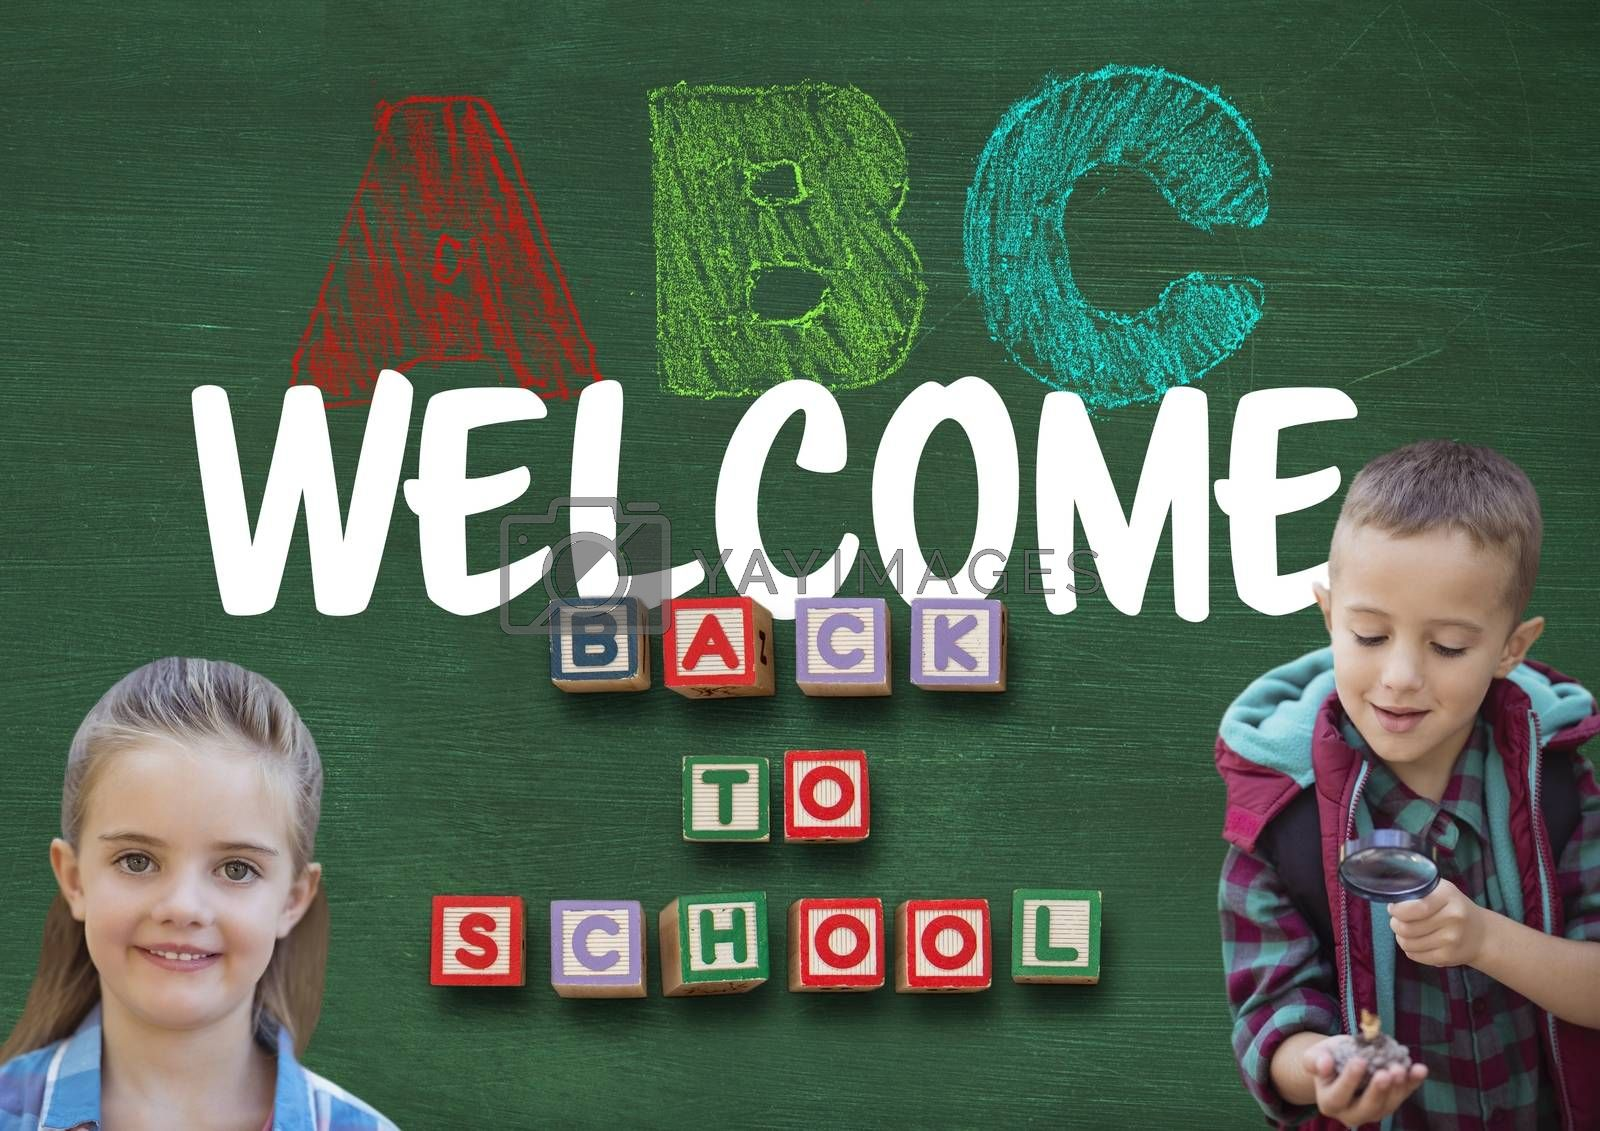 Digital composite of Kids and Welcome back to school ABC text on blackboard